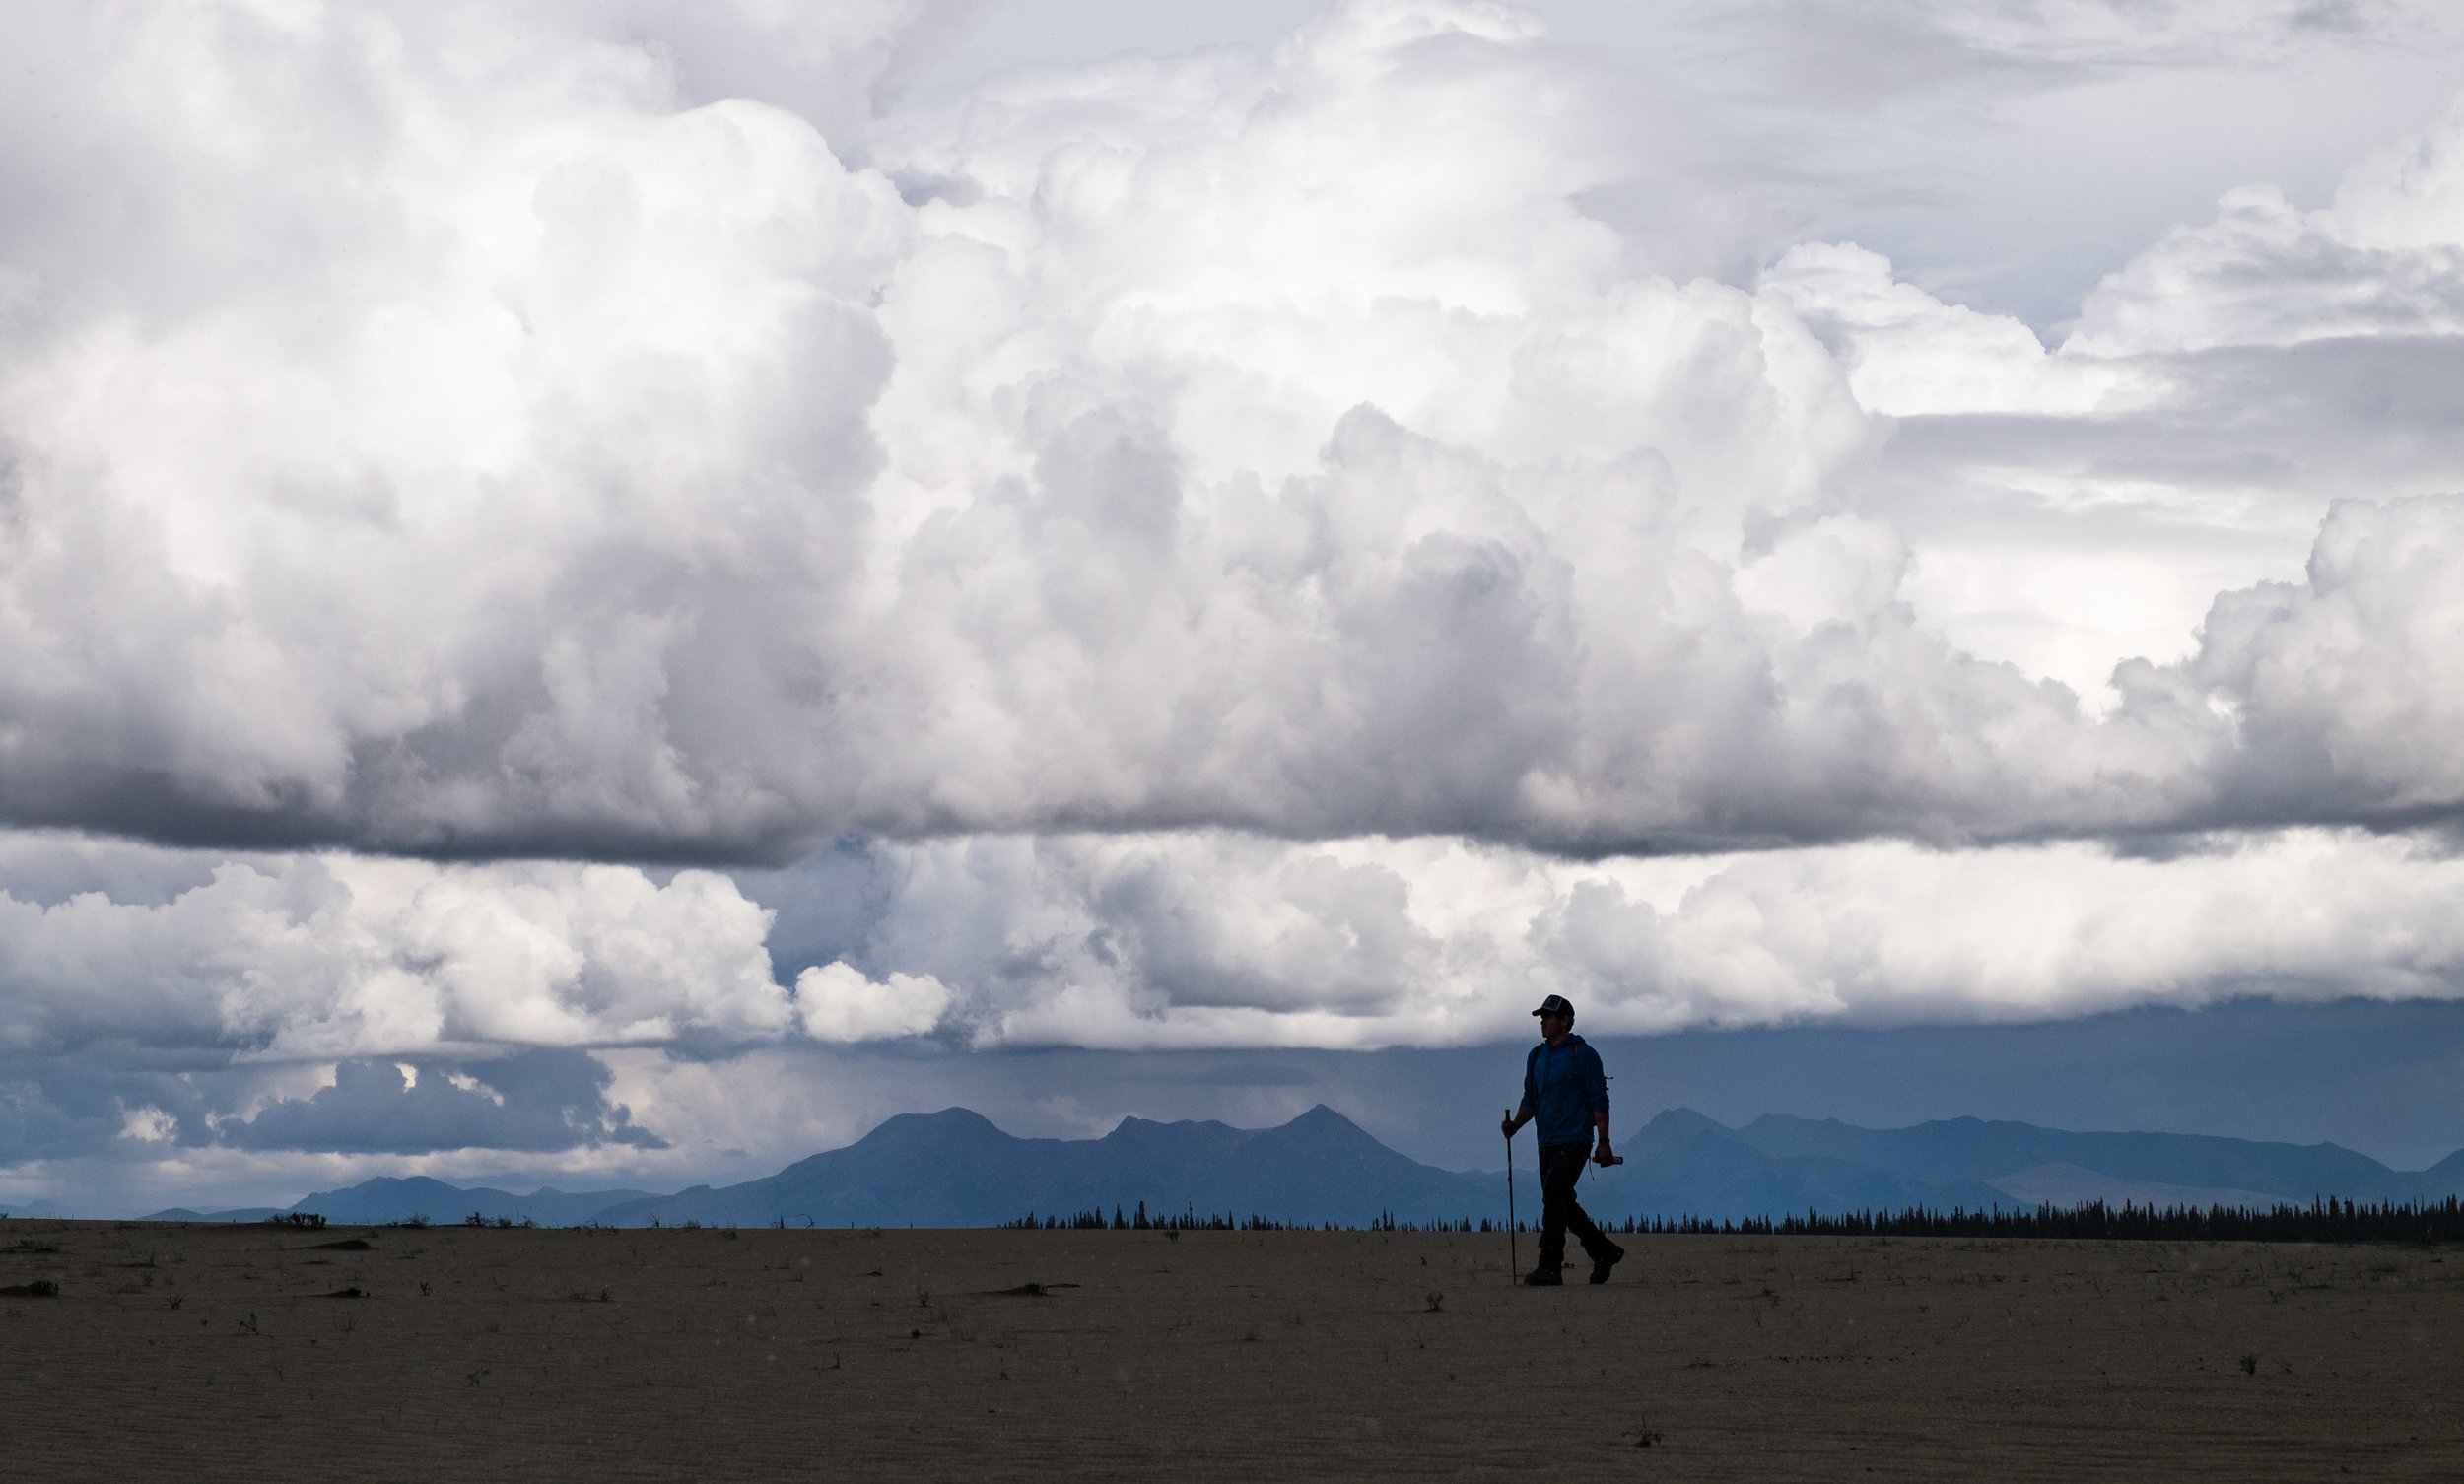 Our awesome guide, Sean, a lead guide with Alaska Alpine Adventures, silhouetted against the amazing sky.